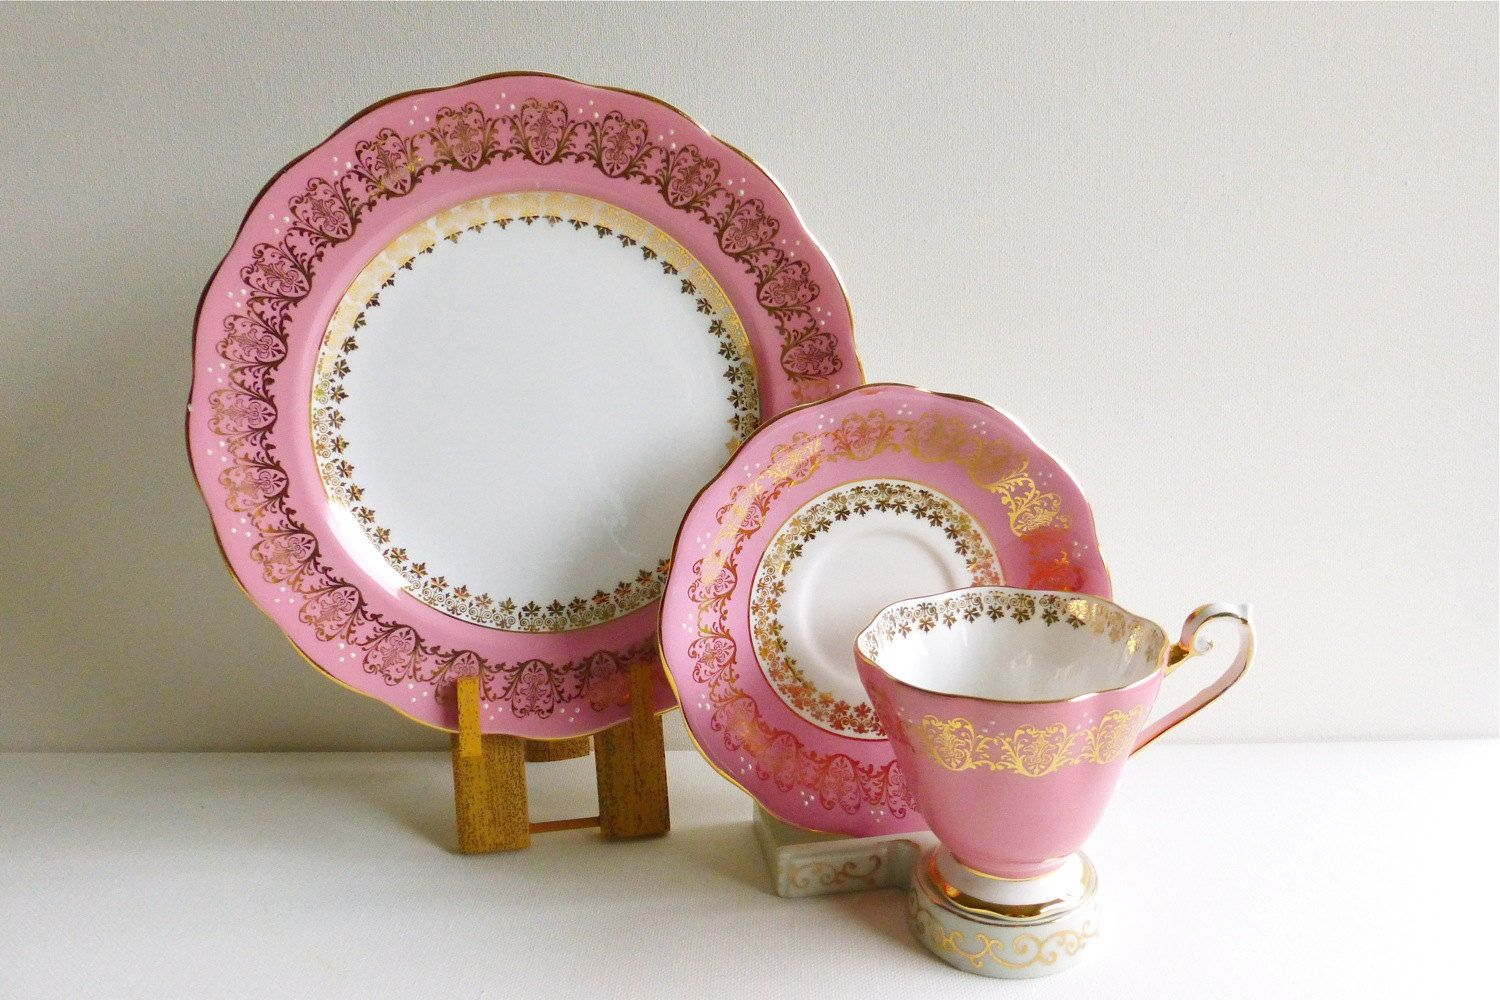 Vintage Royal Standard Bone China Teacup Trio. Pink, Gold & White, Made in England. Perfect for a Vintage Tea Party, Gift or Styling Prop by VintageTeaTreasures on Etsy